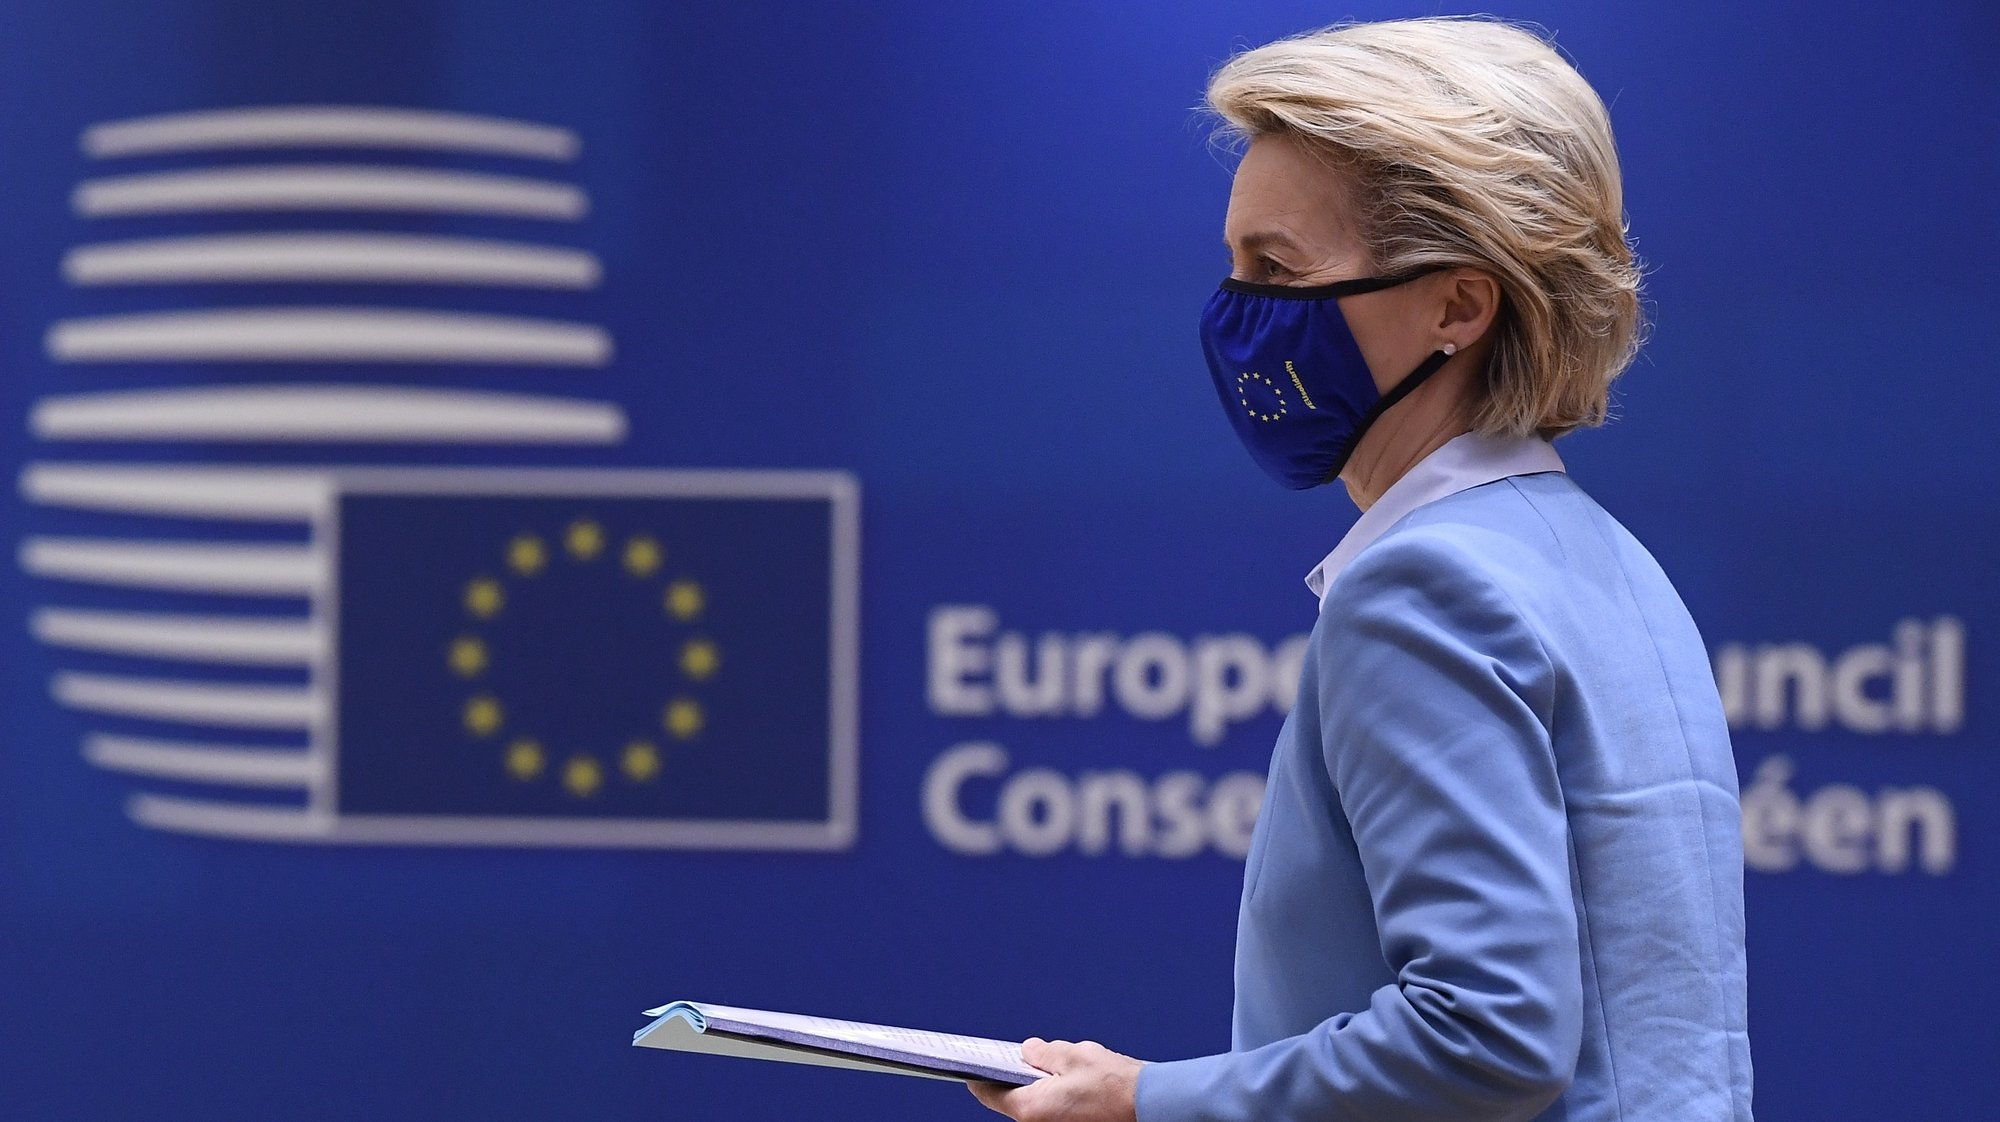 epa09226263 President of the European Commission Ursula von der Leyen arrives to attend the second day of the EU summit at the European Council building in Brussels, Belgium, 25 May 2021. European Union leaders take part in a two day in-person meeting to discuss the coronavirus pandemic, climate change and Russia relations.  EPA/JOHN THYS